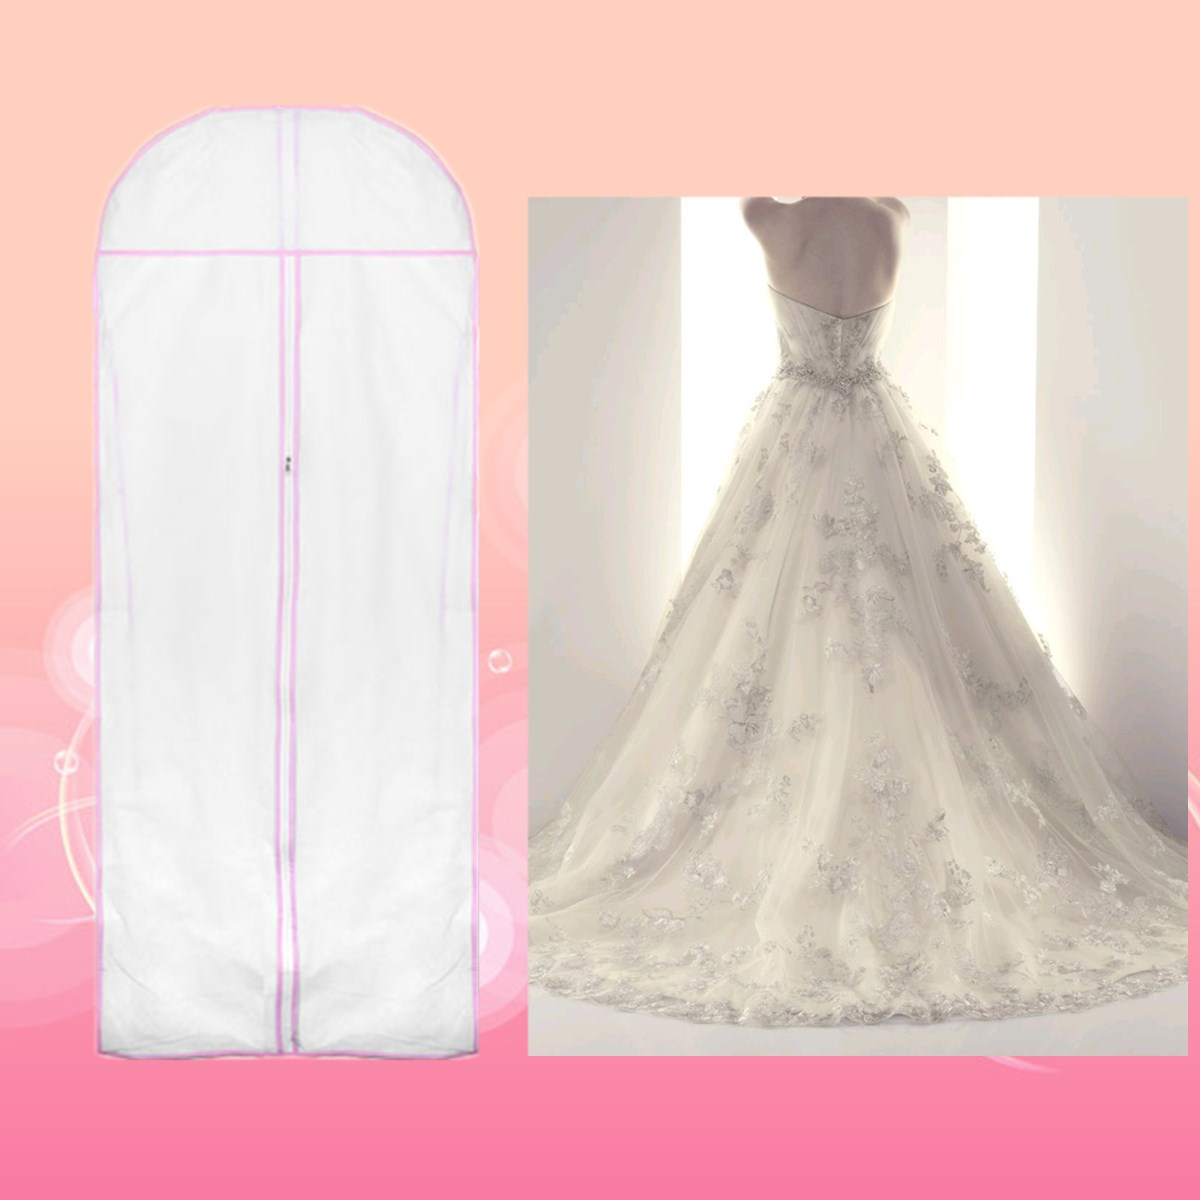 garment bags wedding dress storage Huge Extra Large White Monster Breathable Cloth Bridal Wedding Gown Dress Garment Bag Travel Storage Organize